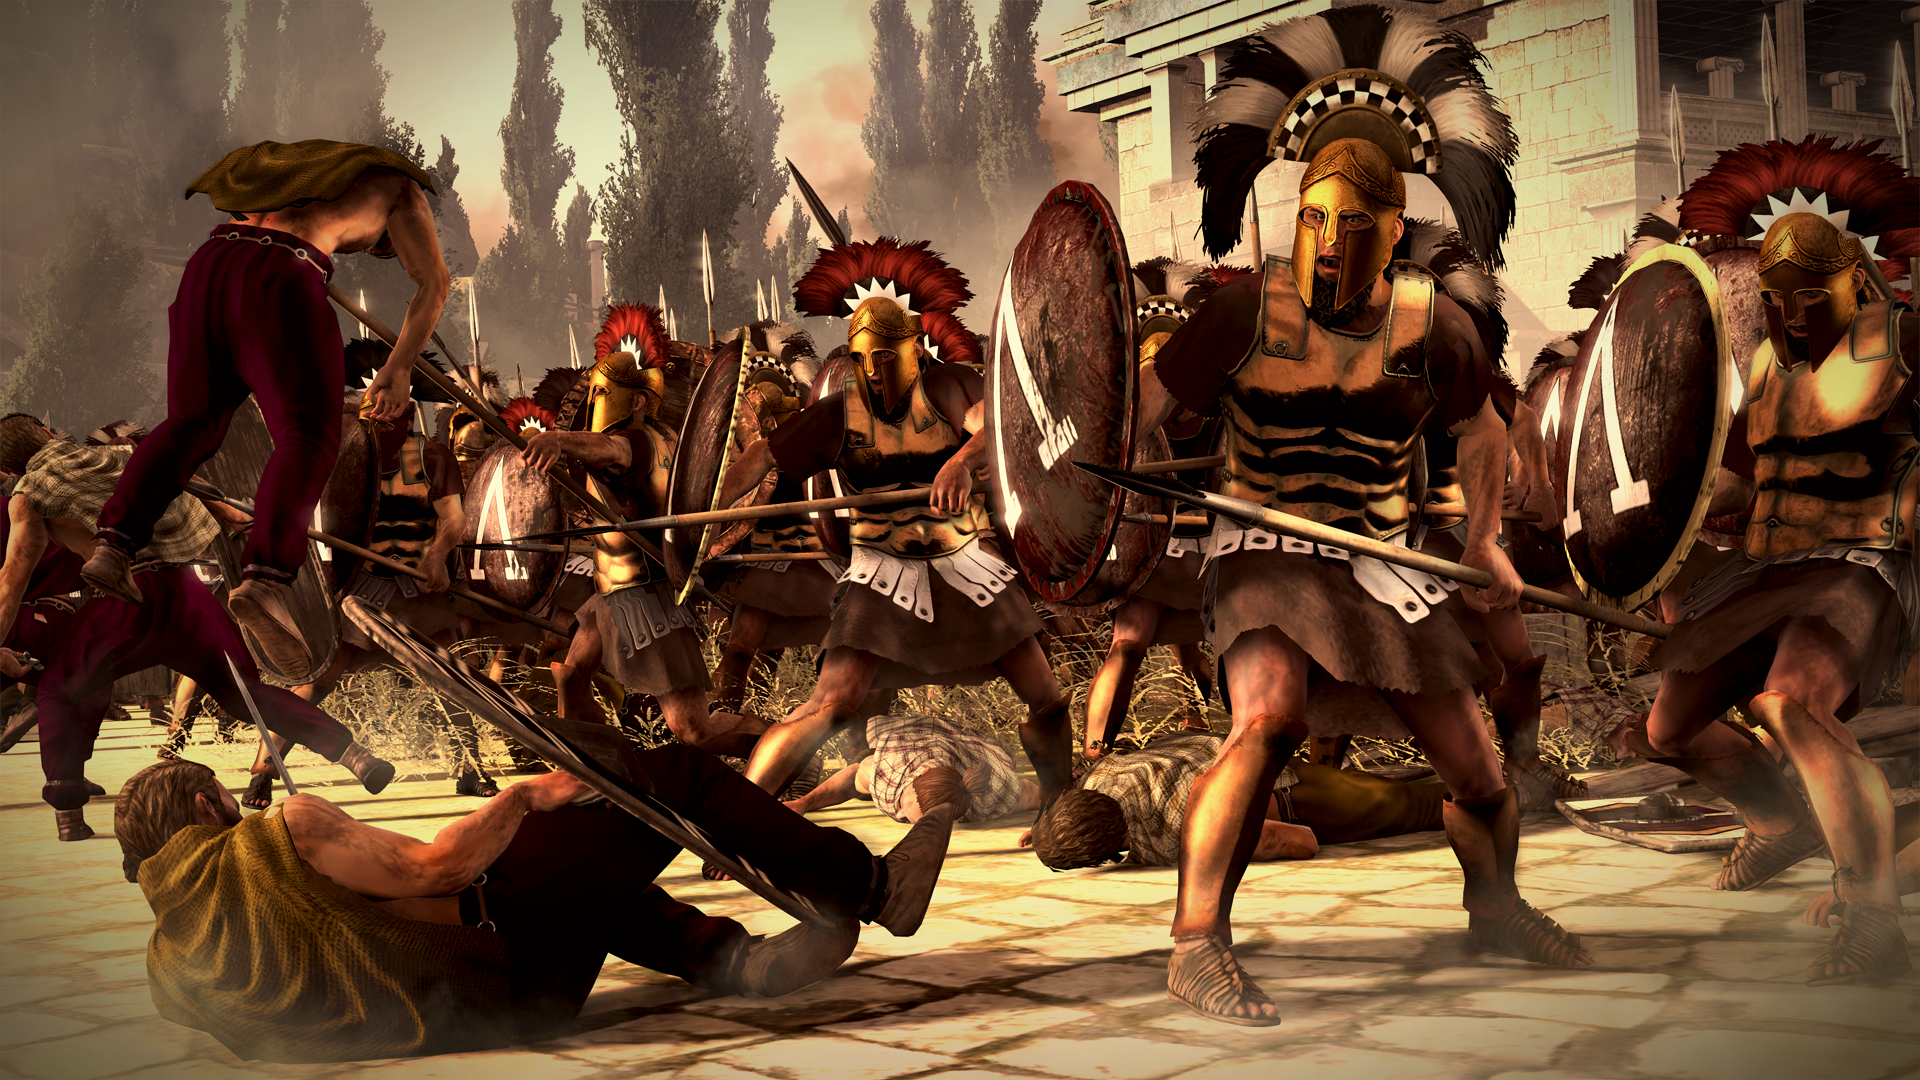 Free Download Total War Rome Ii Hd Wallpapers And Background